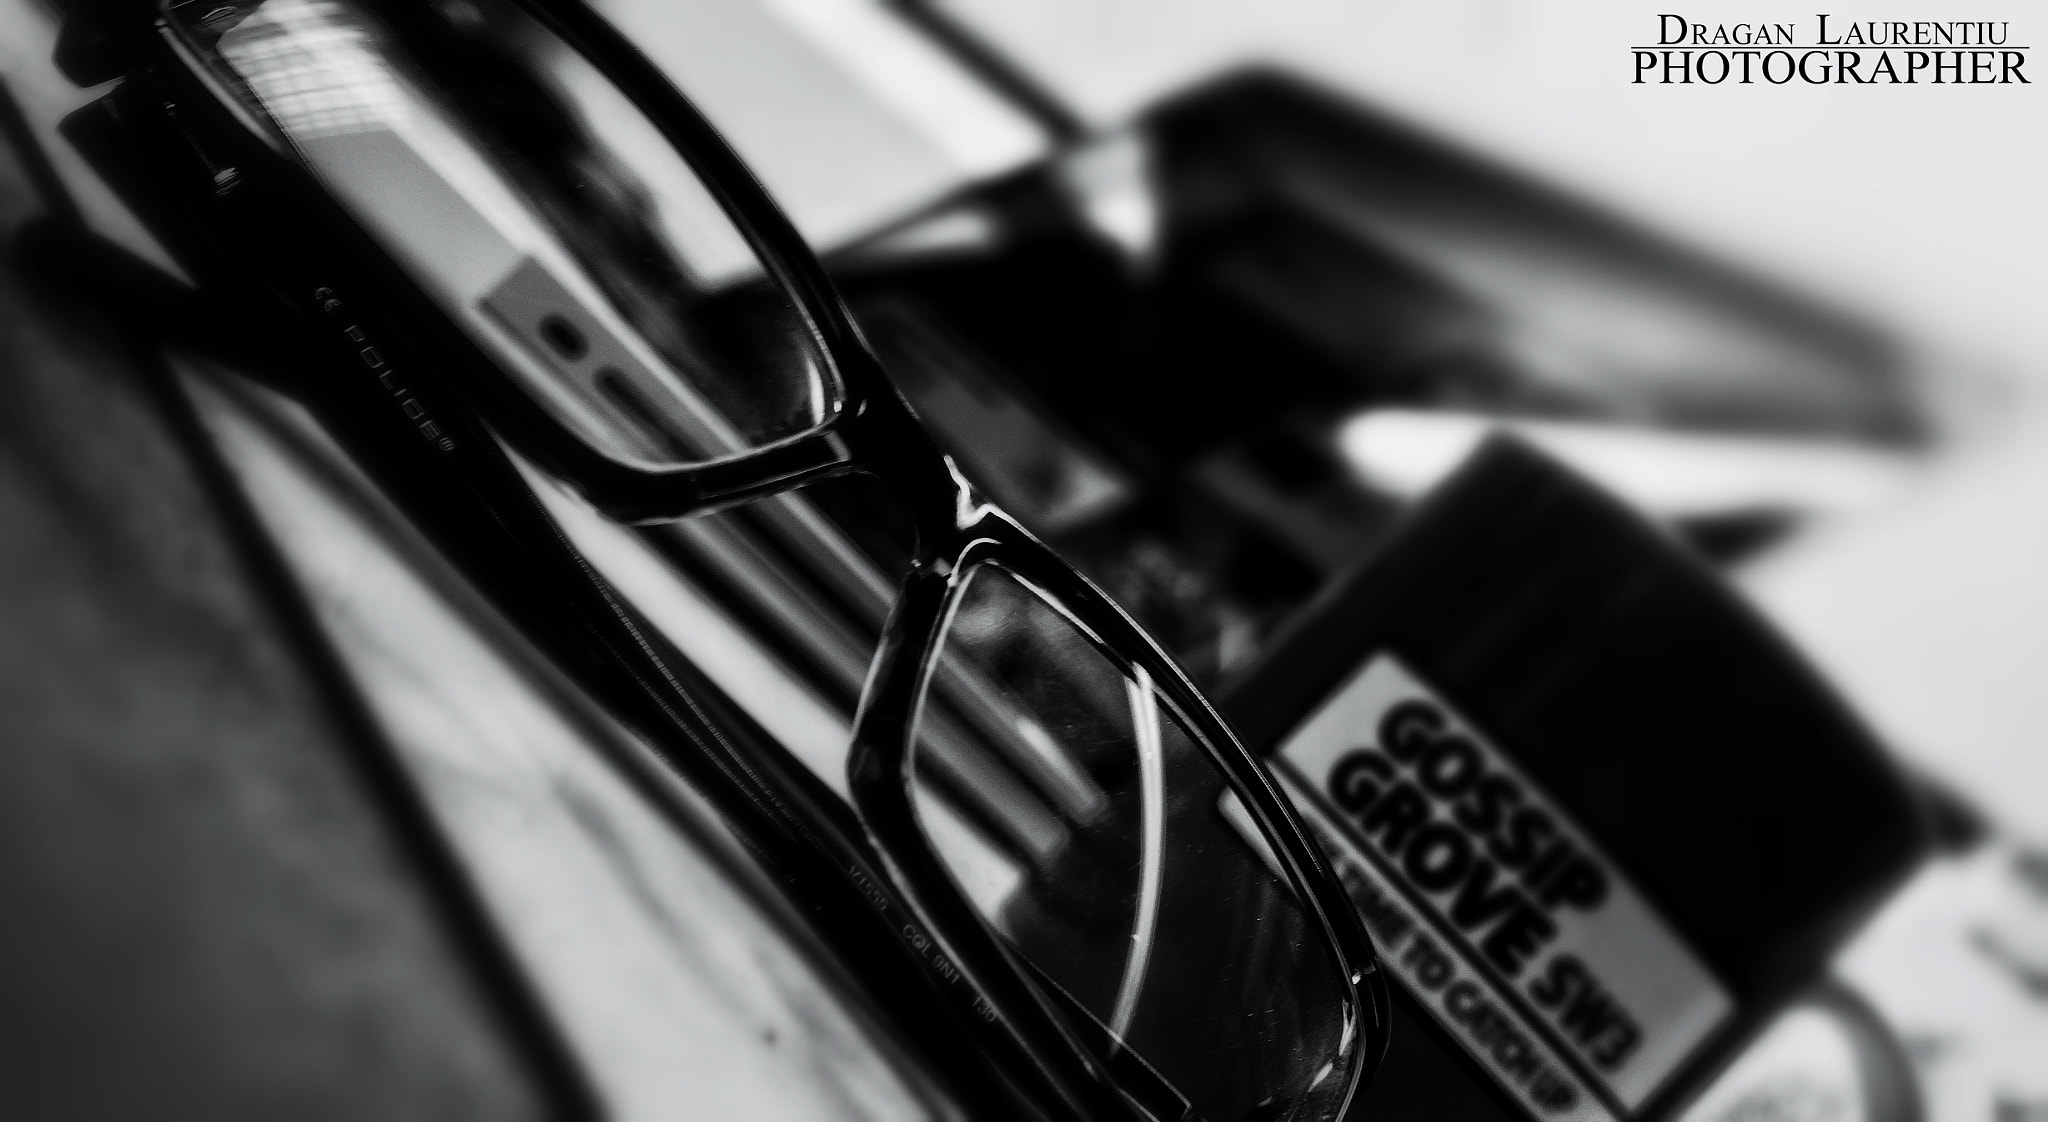 Photograph Glasses pbscire by Laur Dragan on 500px